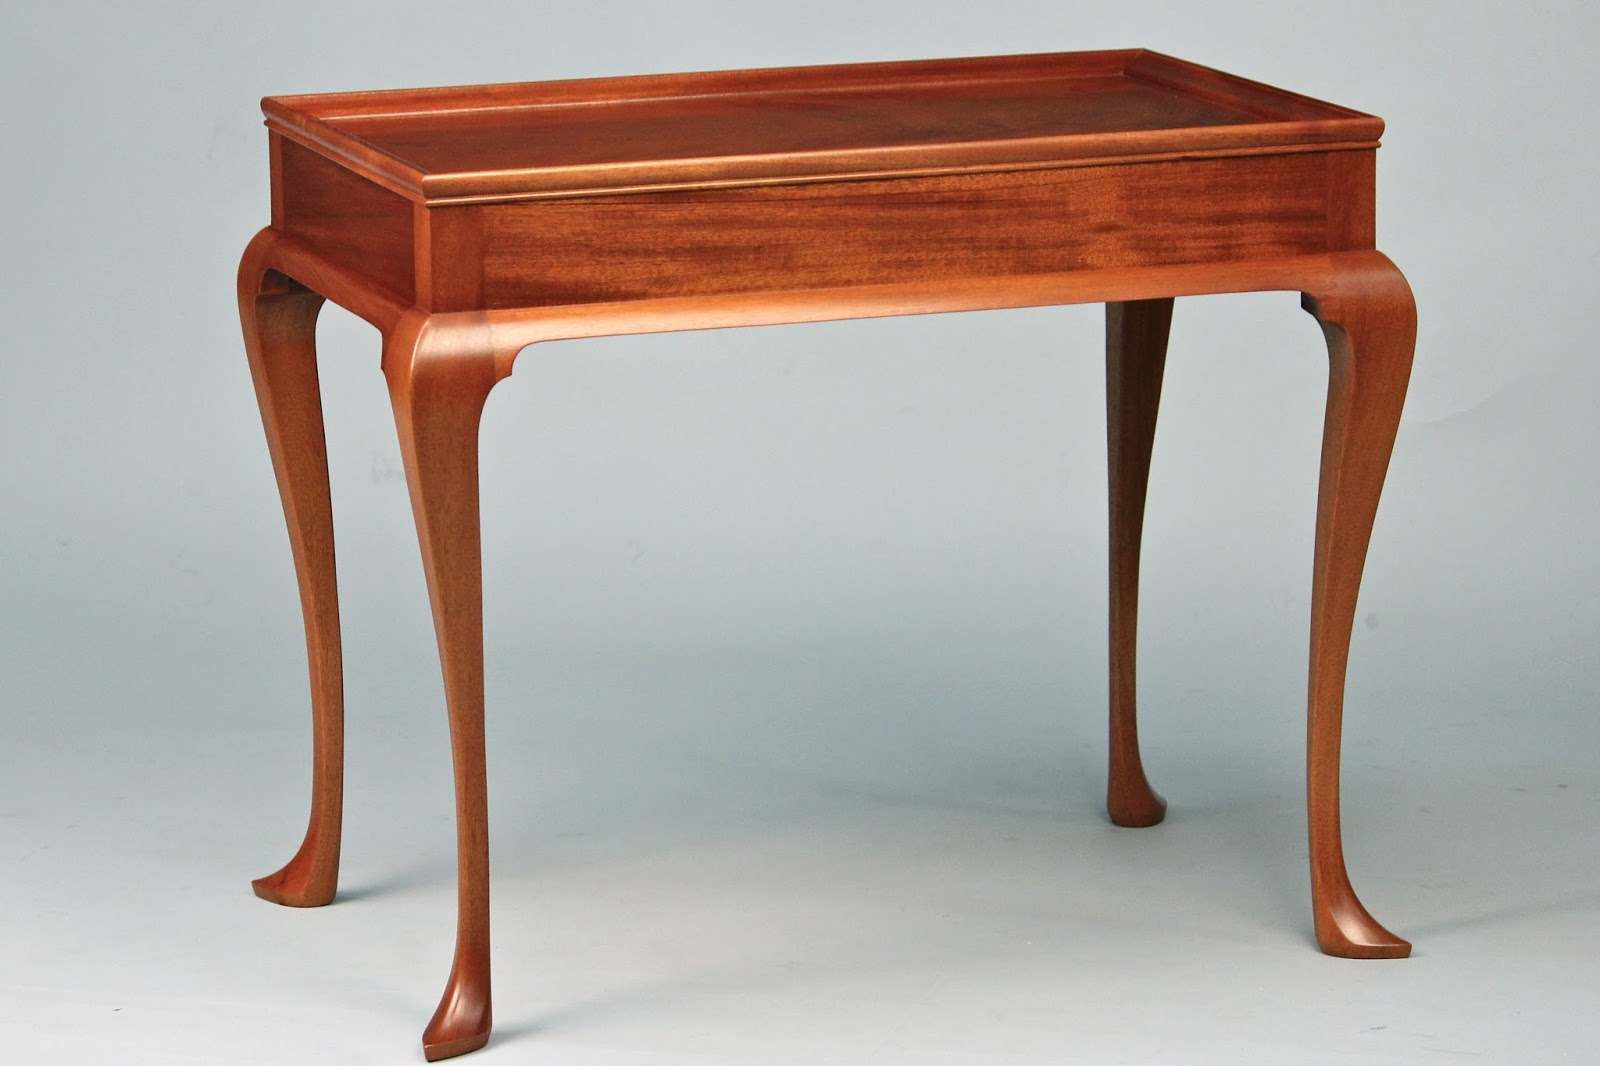 Doucette and wolfe fine furniture makers tea table for Reproduction furniture